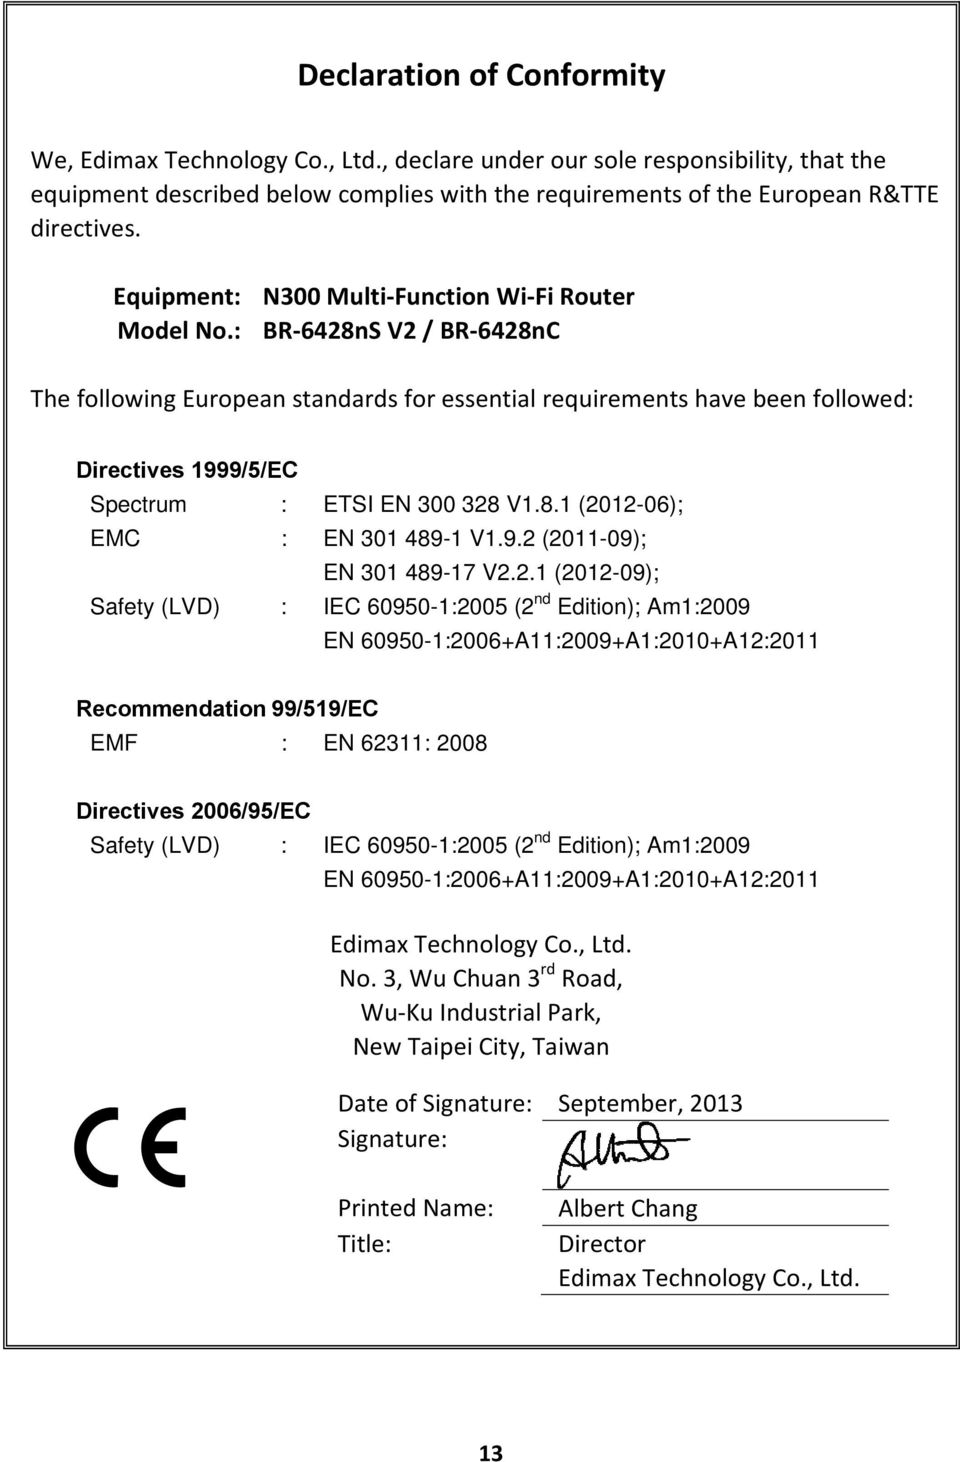 : BR 6428nS V2 / BR 6428nC The following European standards for essential requirements have been followed: Directives 1999/5/EC Spectrum : ETSI EN 300 328 V1.8.1 (2012-06); EMC : EN 301 489-1 V1.9.2 (2011-09); EN 301 489-17 V2.